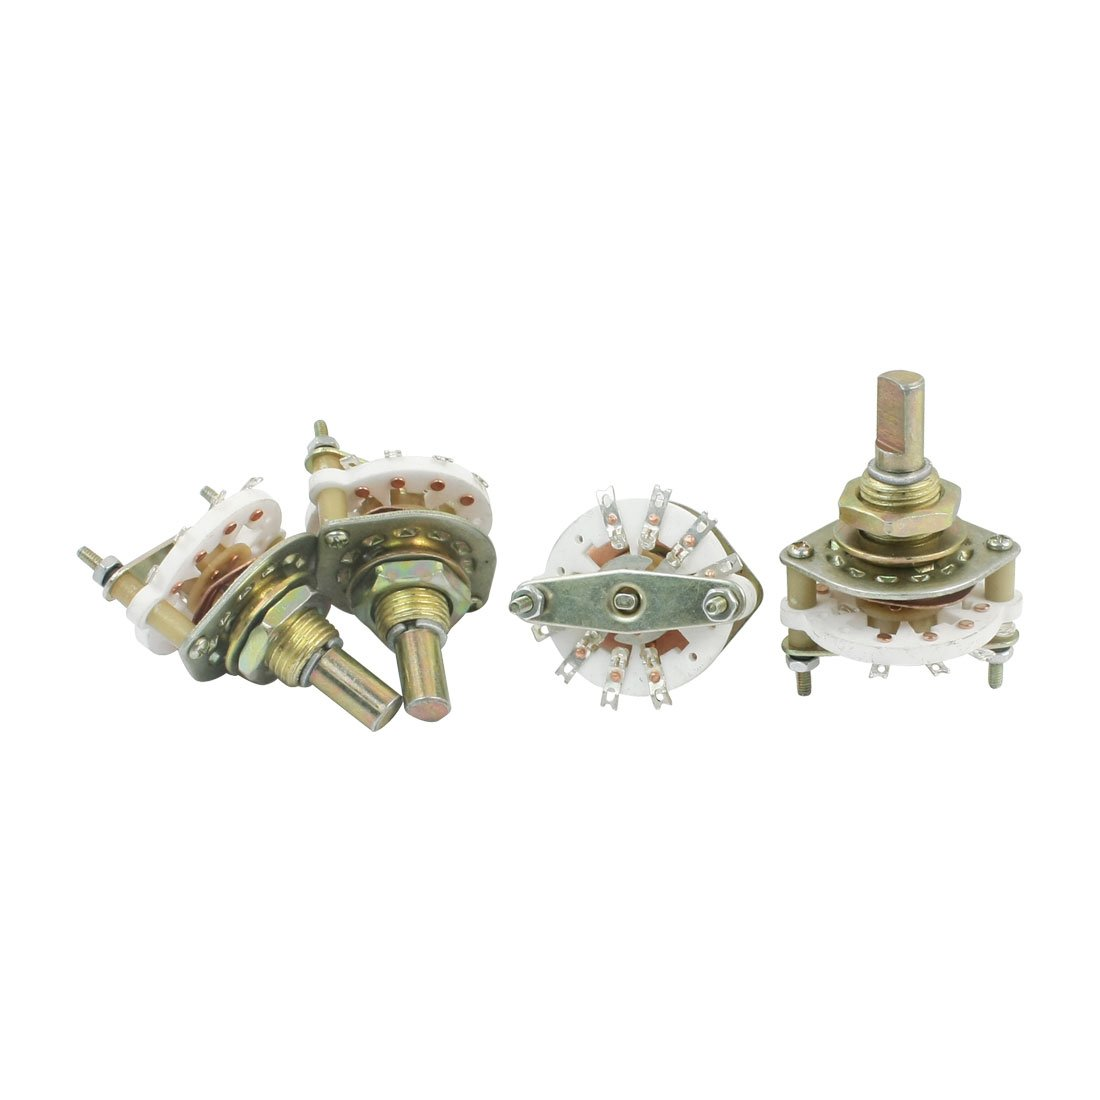 uxcell 4Pcs 2P3T 2 Pole 3 Position Single Deck Band Channael Rotary Switches